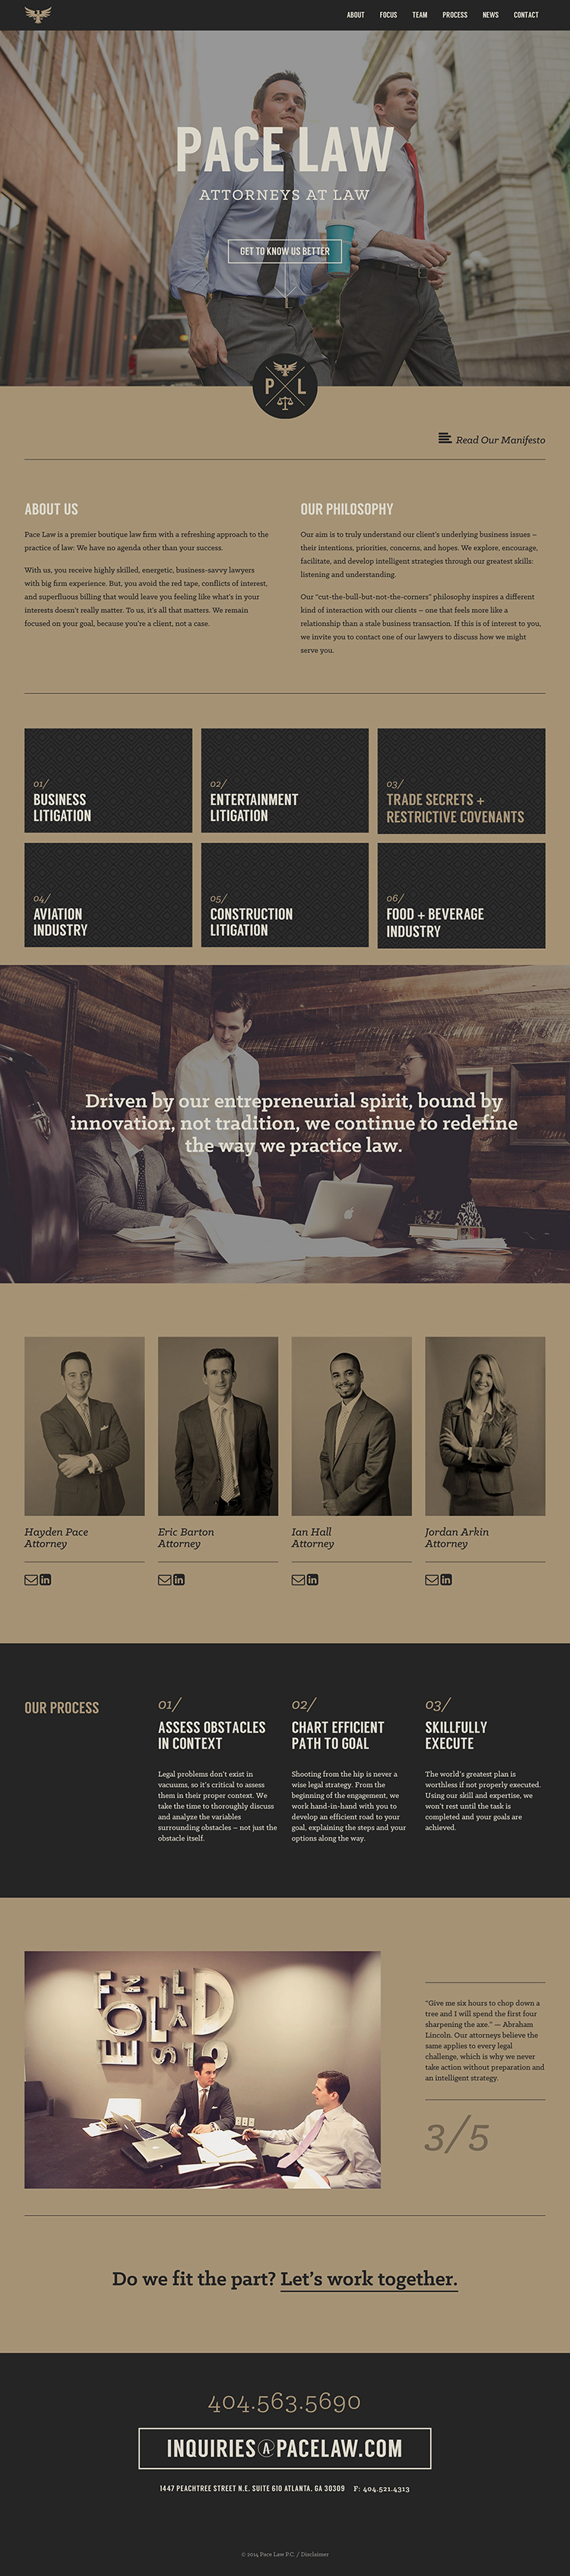 A one page flat ui design website for a law firm